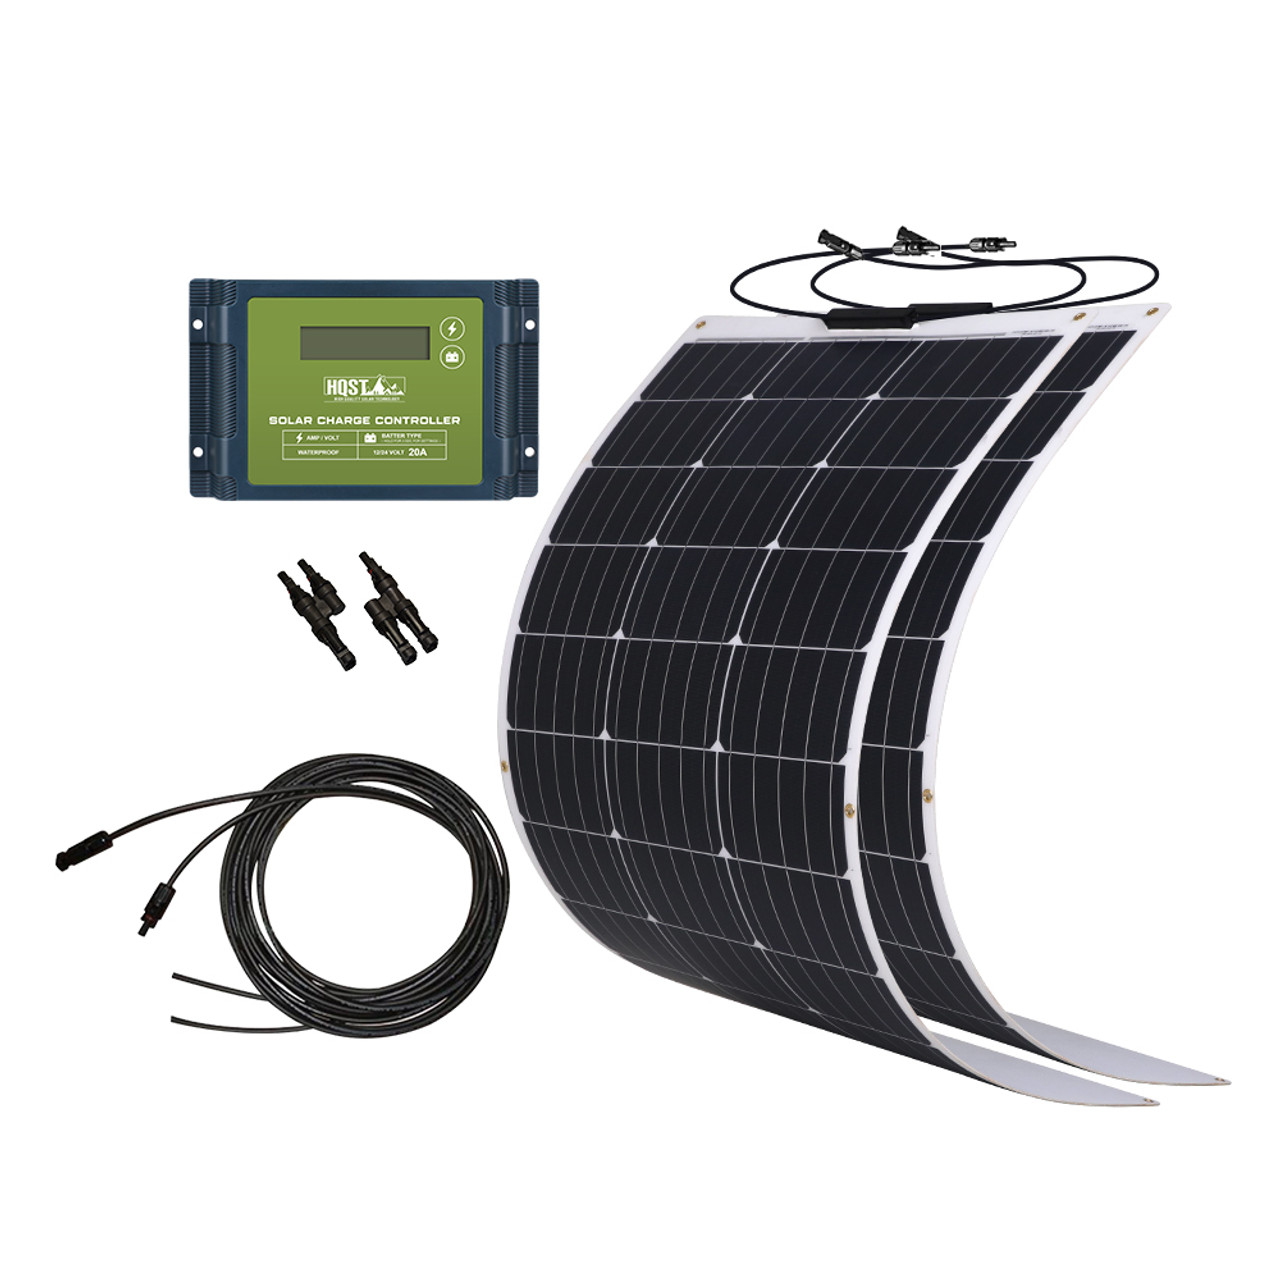 200 Watt 12Volt Flexible Monocrystalline Solar Panel Kit with Waterproof 20A PWM Charge Controller